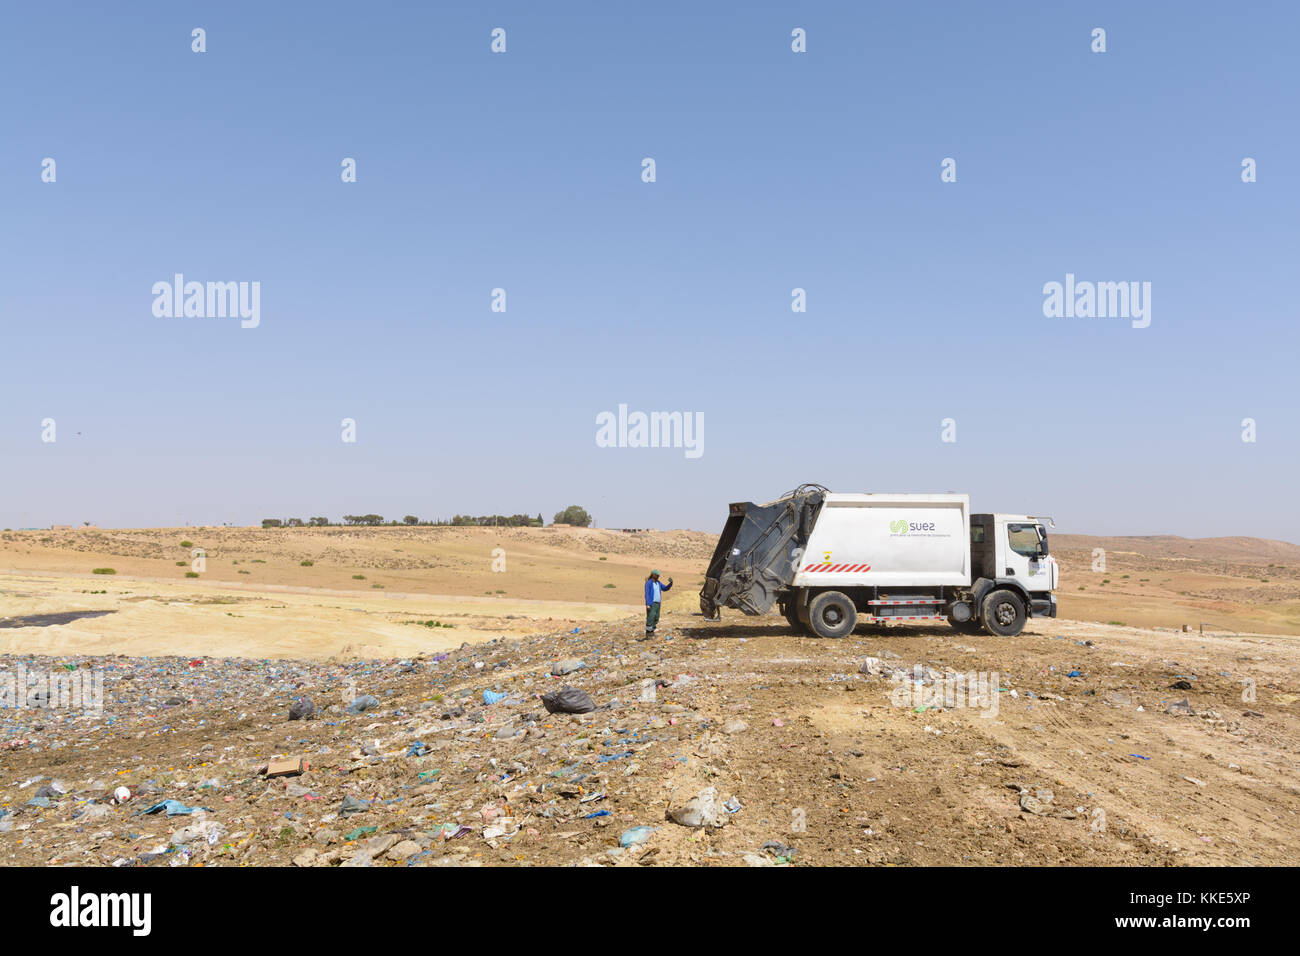 Truck dumping domestic garbage on a landfill site - Stock Image